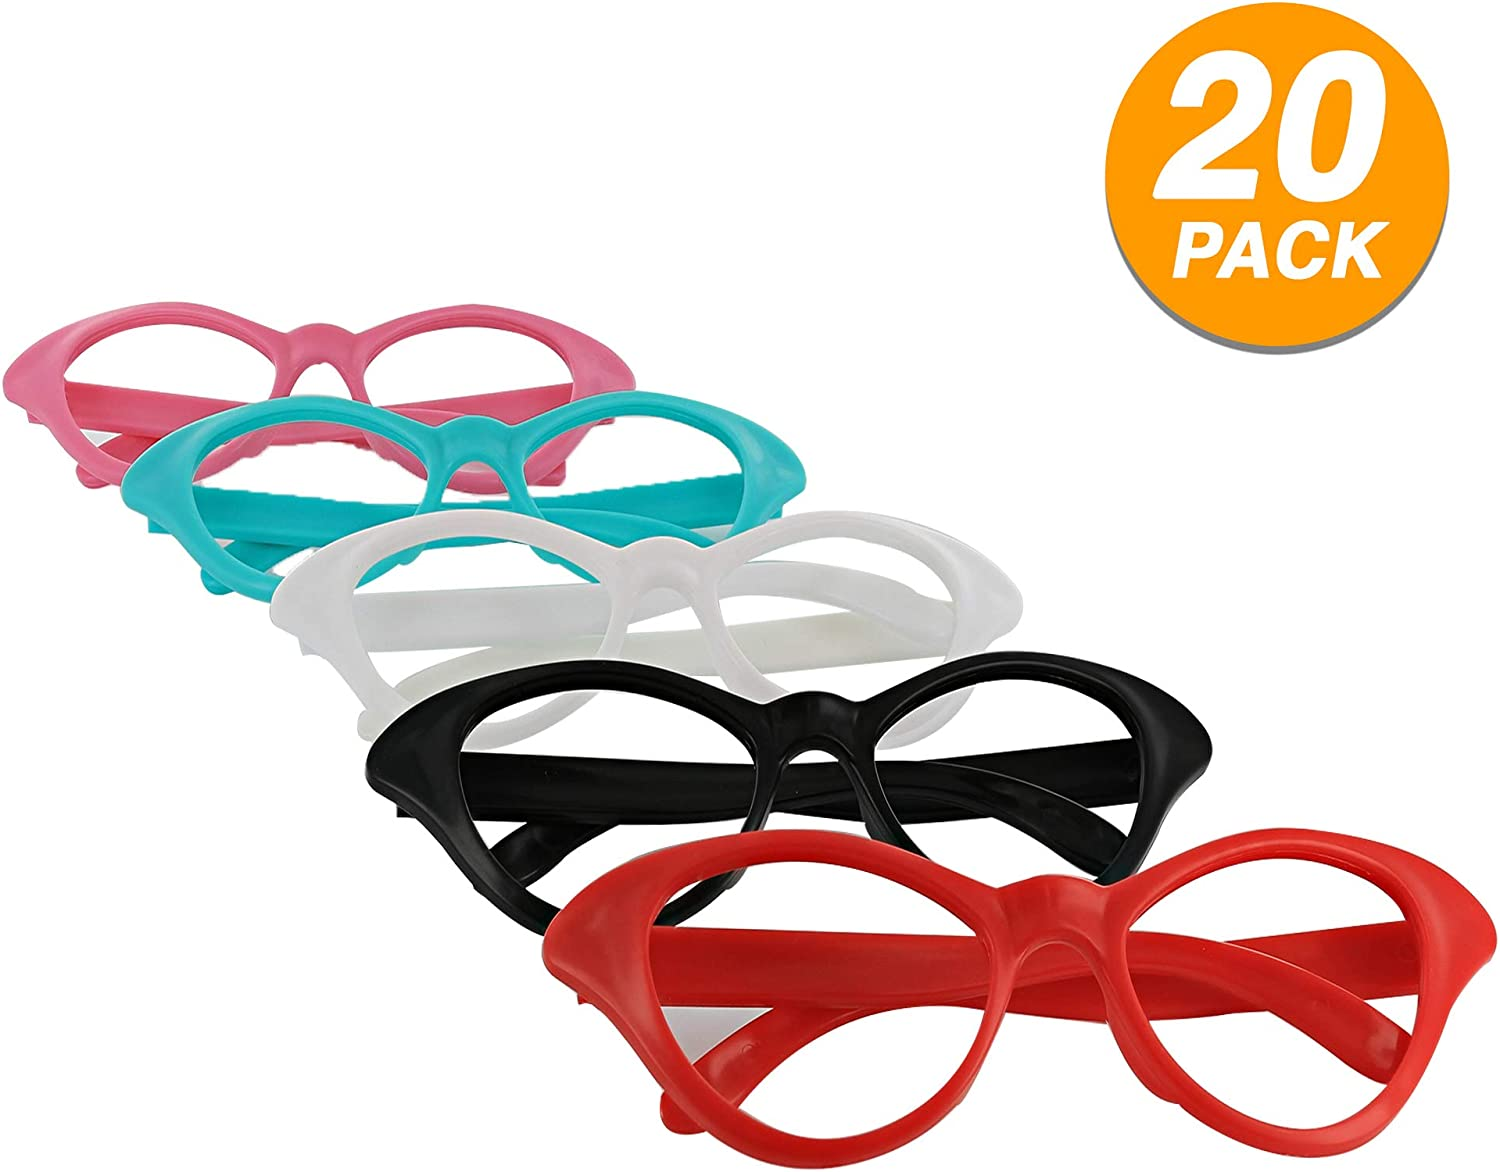 Eye Glasses Nifty 50's Theme Party Cat Style Super Fashion Clear Lens Eyewear Party Favor Fun Costume Accessory Multi Colors Durable Sunglasses (20 Pisces) - By Ram-Pro